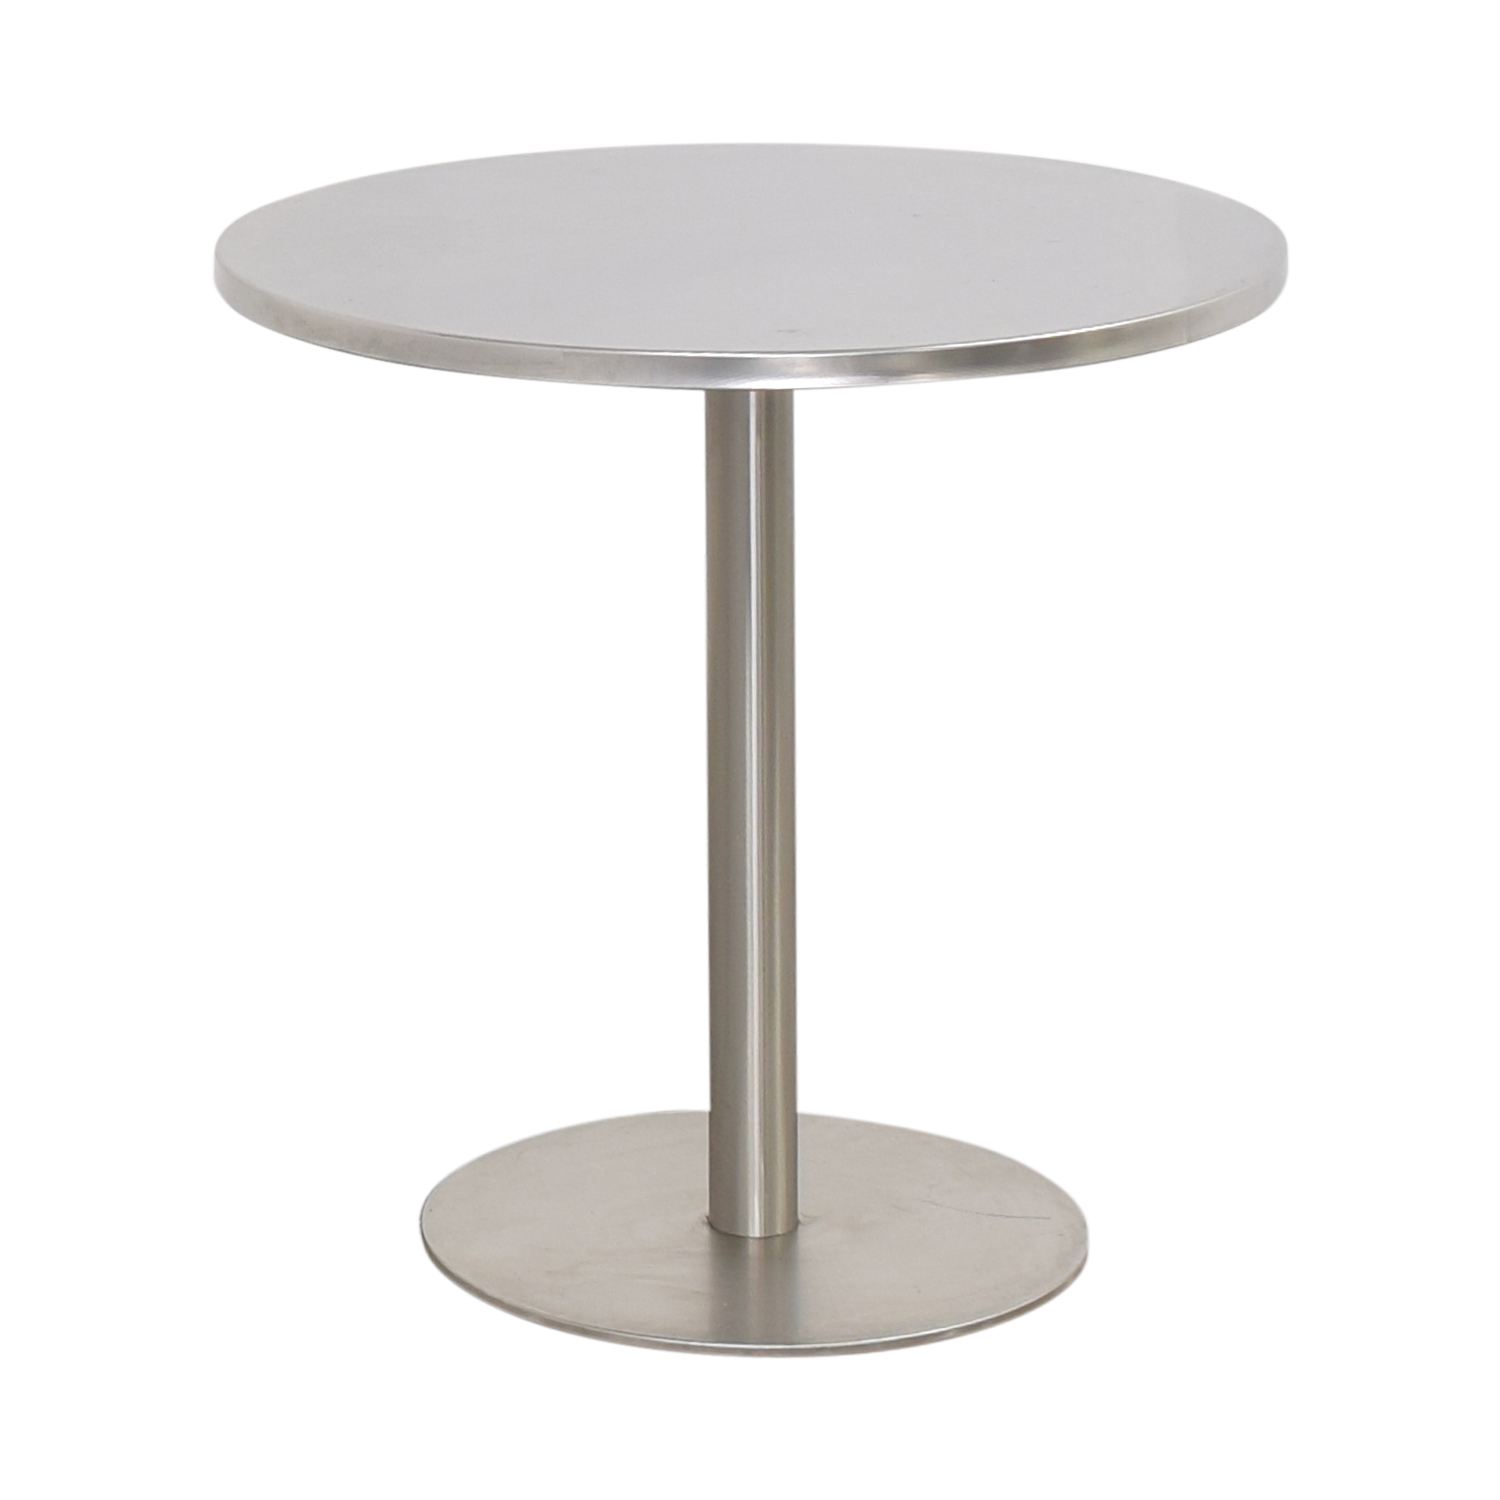 CB2 Watermark Bistro Table / Tables